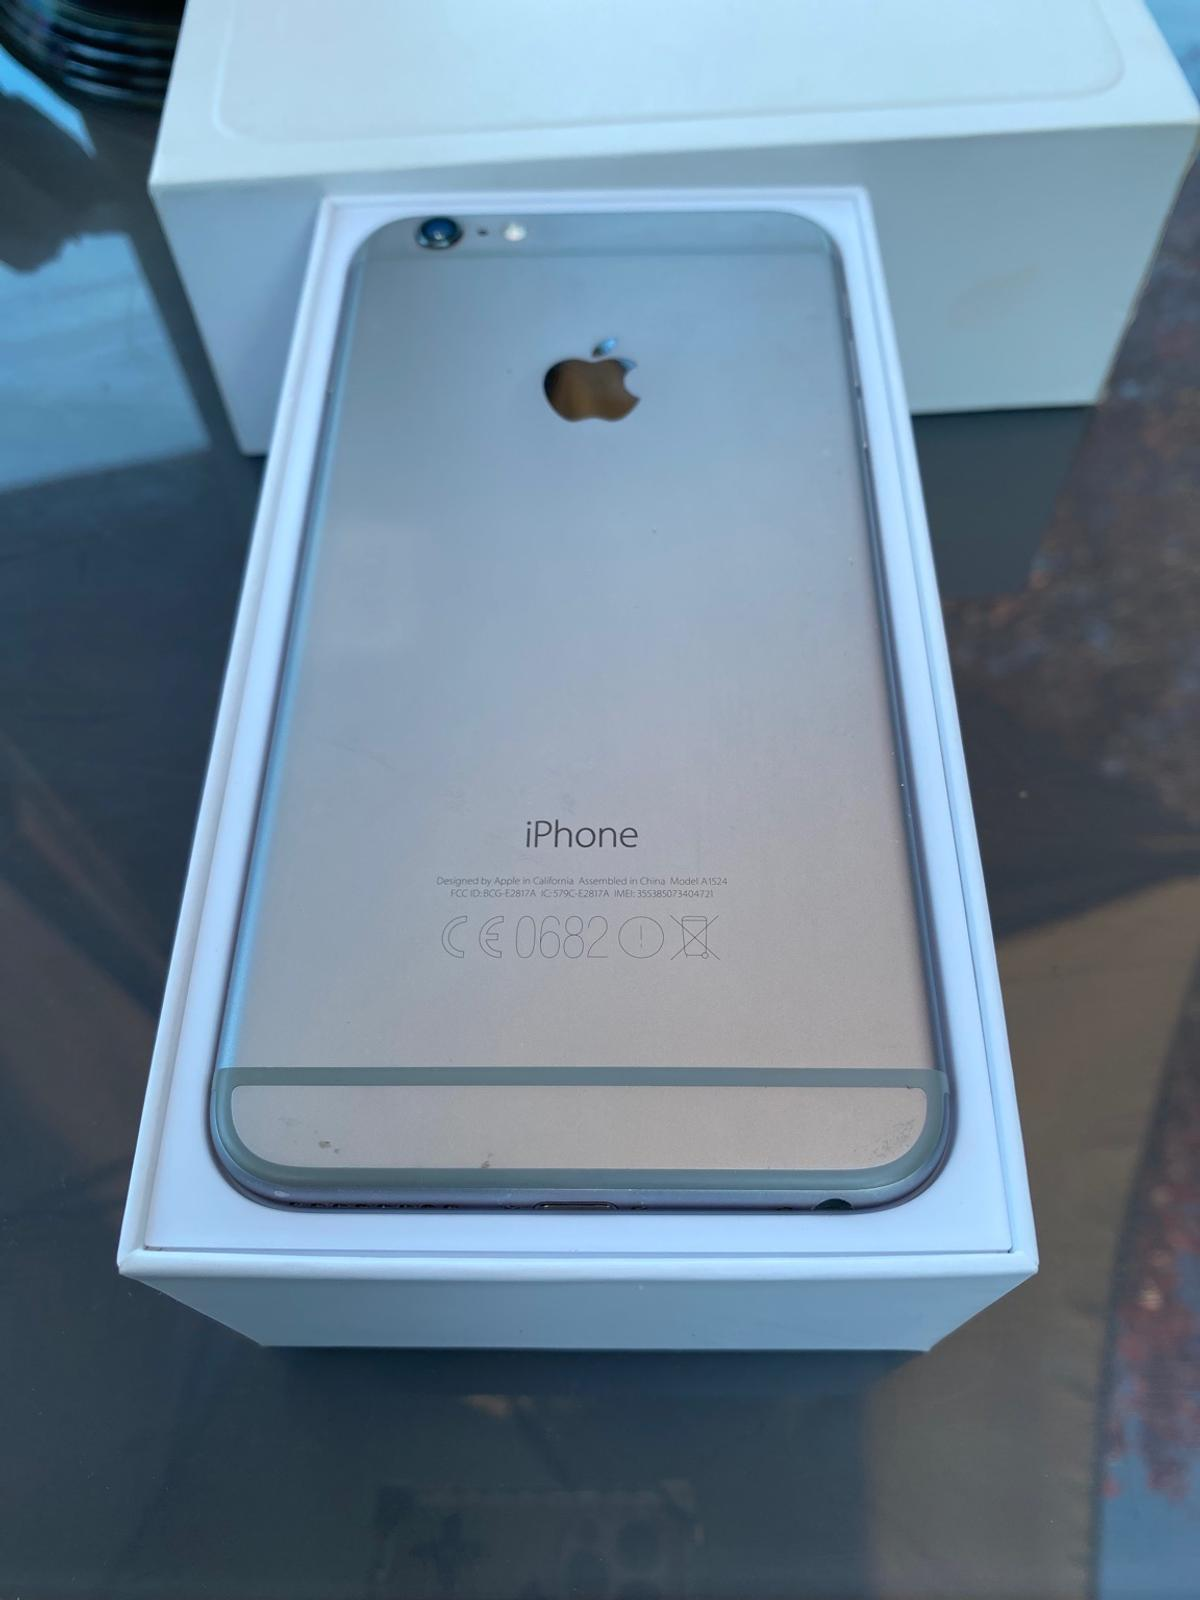 Used iPhone 6 plus 64gb No marks or scratches on the phone has was keep in a case when was being used. Factory reset  In box not the original box but is a iPhone 6 plus box. no charger or ear piece.  Please no time waster, please free feel to ask questions.